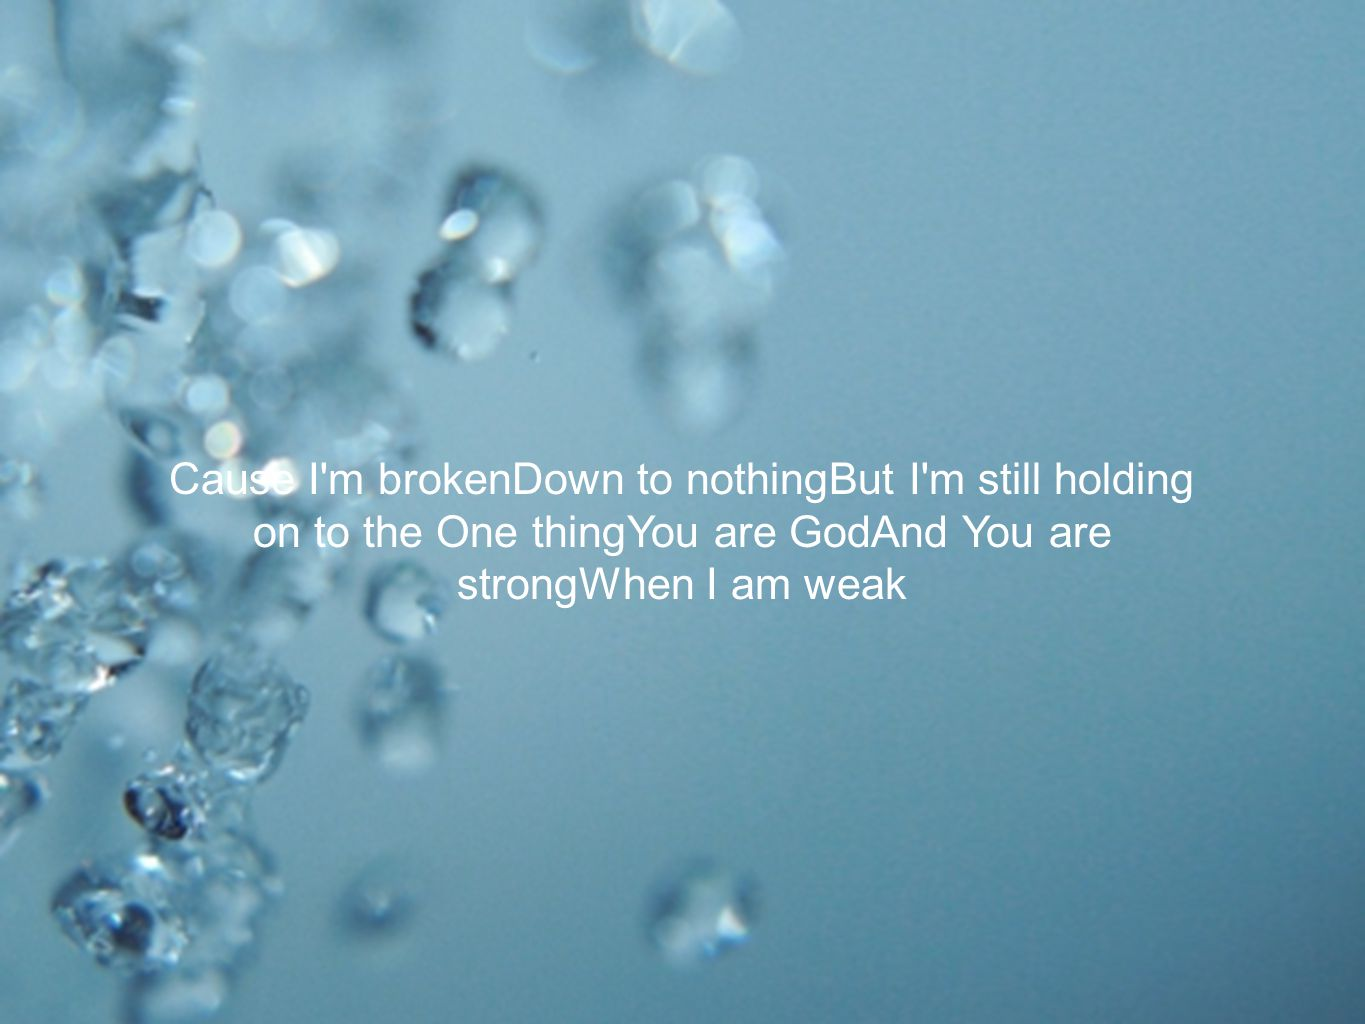 Cause I m brokenDown to nothingBut I m still holding on to the One thingYou are GodAnd You are strongWhen I am weak